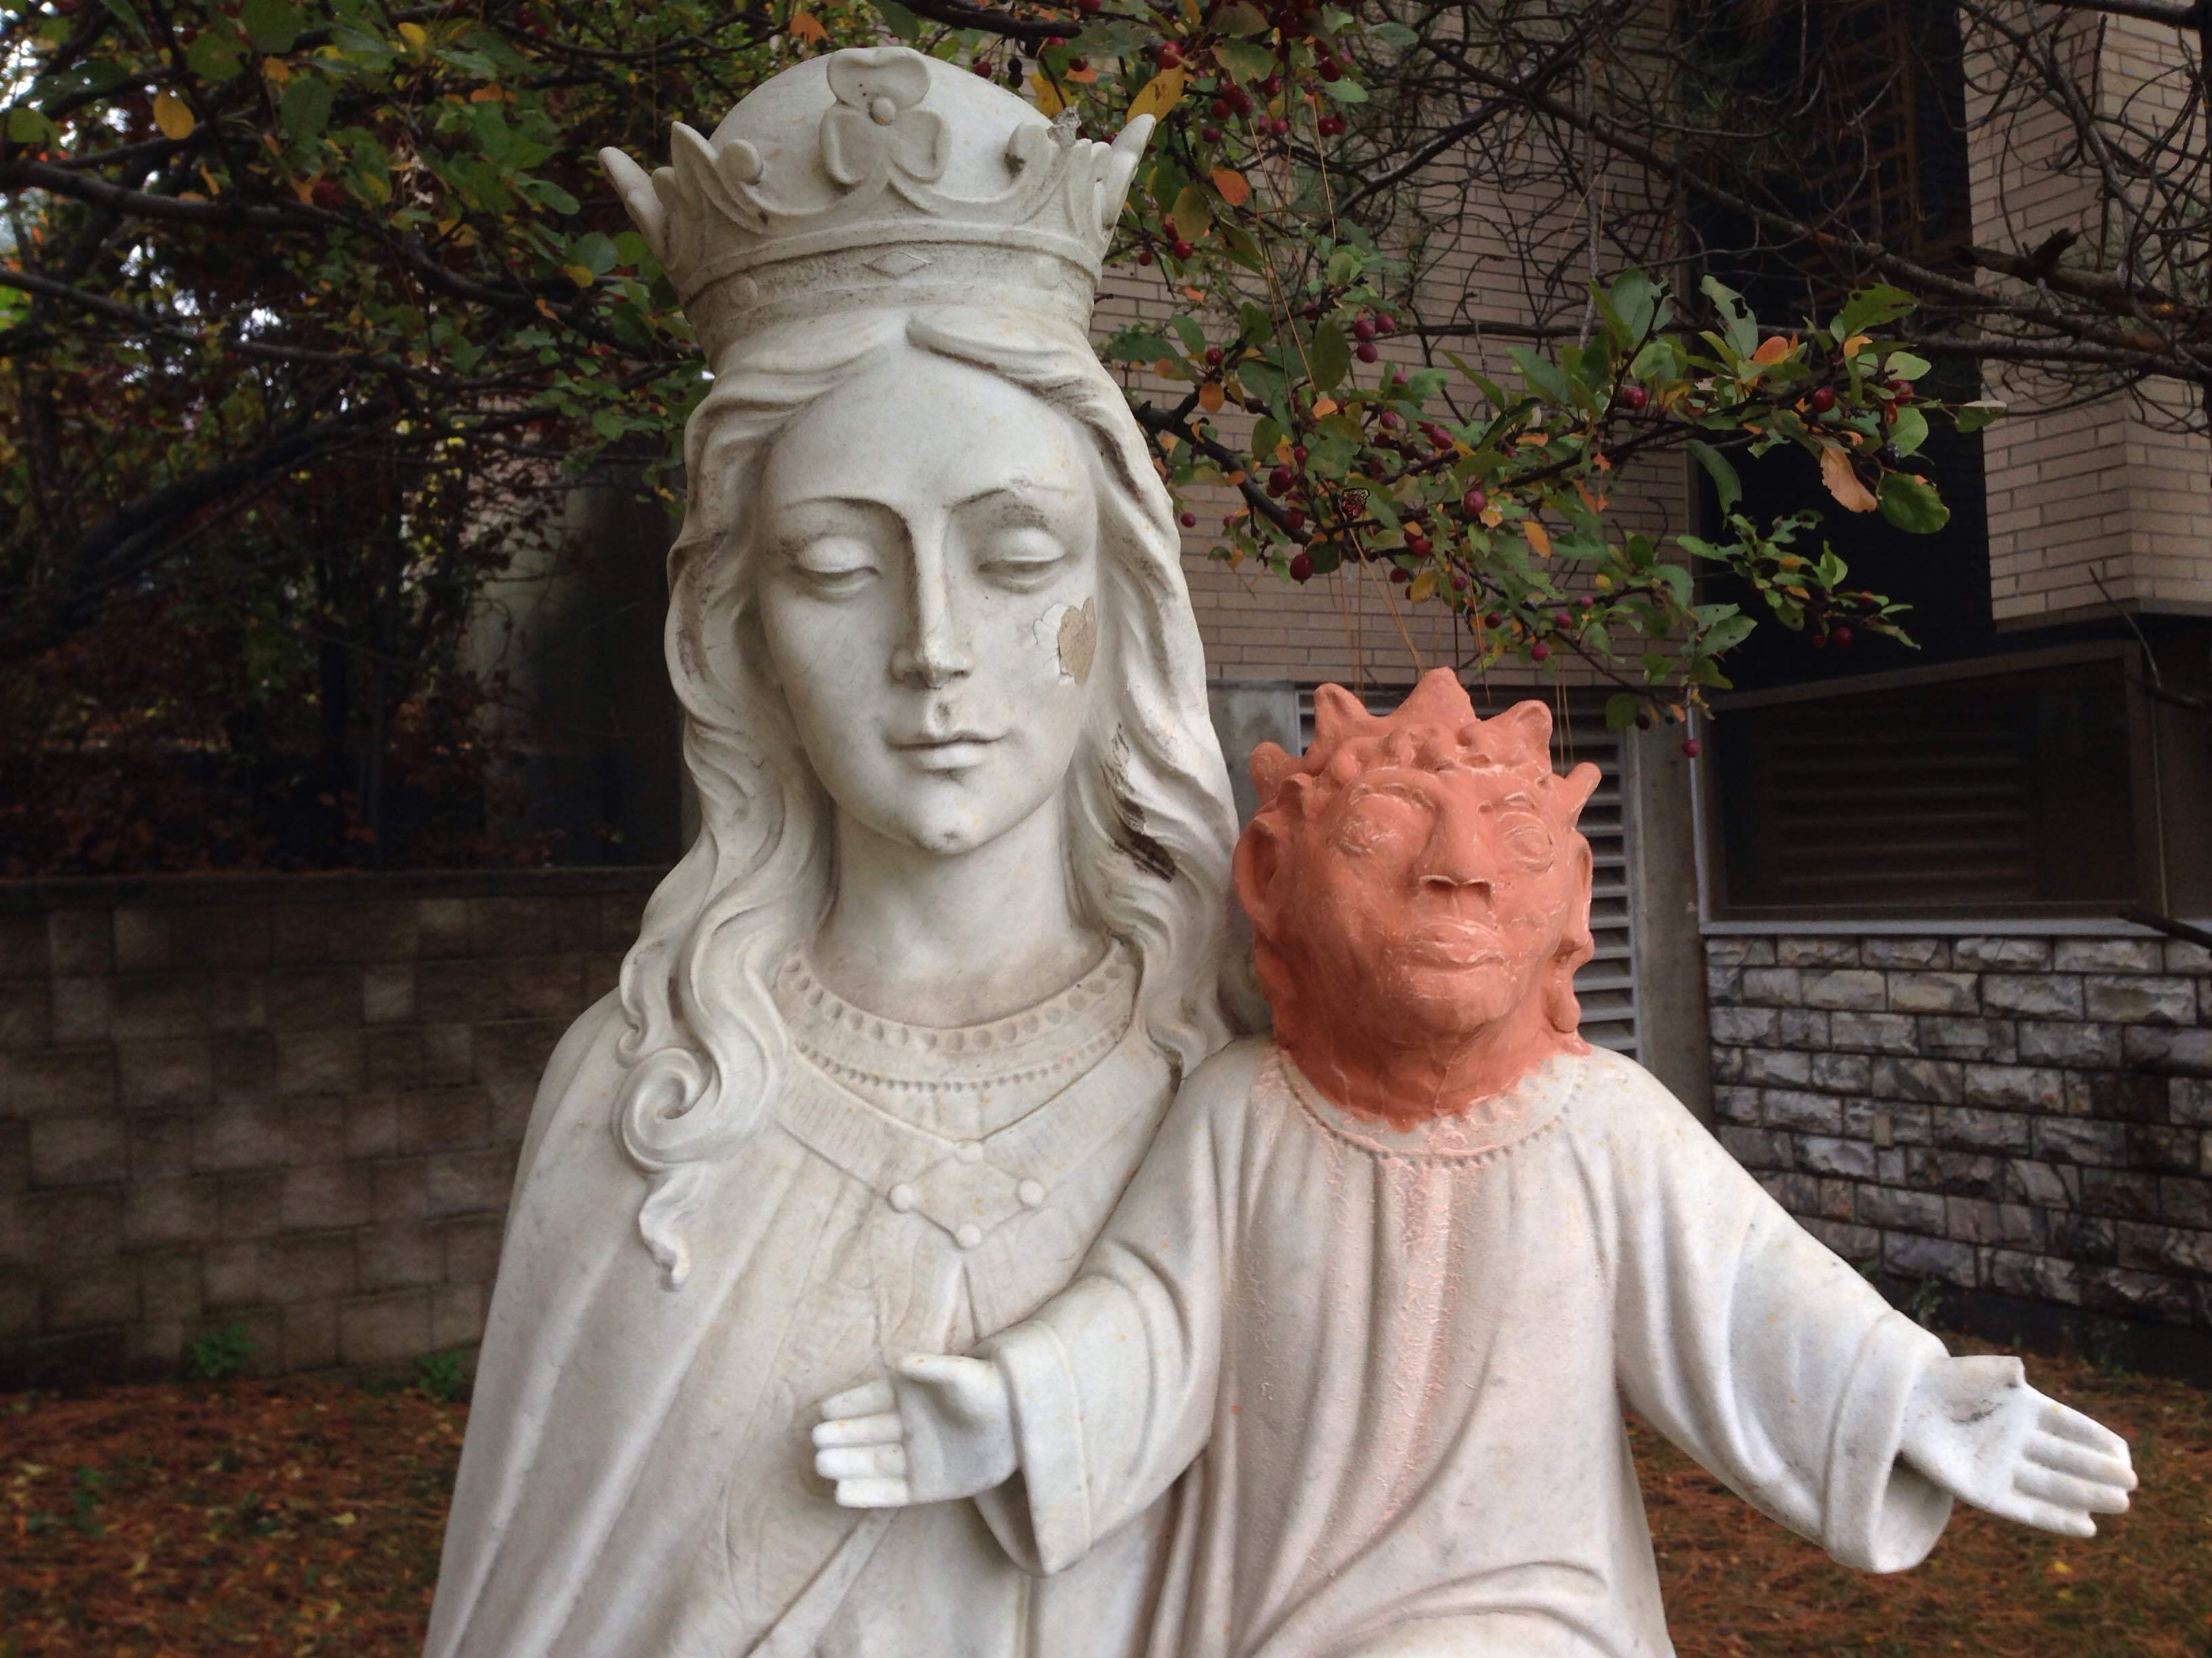 This statue, in Sudbury, Ontario, was apparently vandalized about a year ago. A local artist volunteered to help replace Jesus' missing head, but not everyone appreciates her efforts. Marina von Stackelberg/CBC